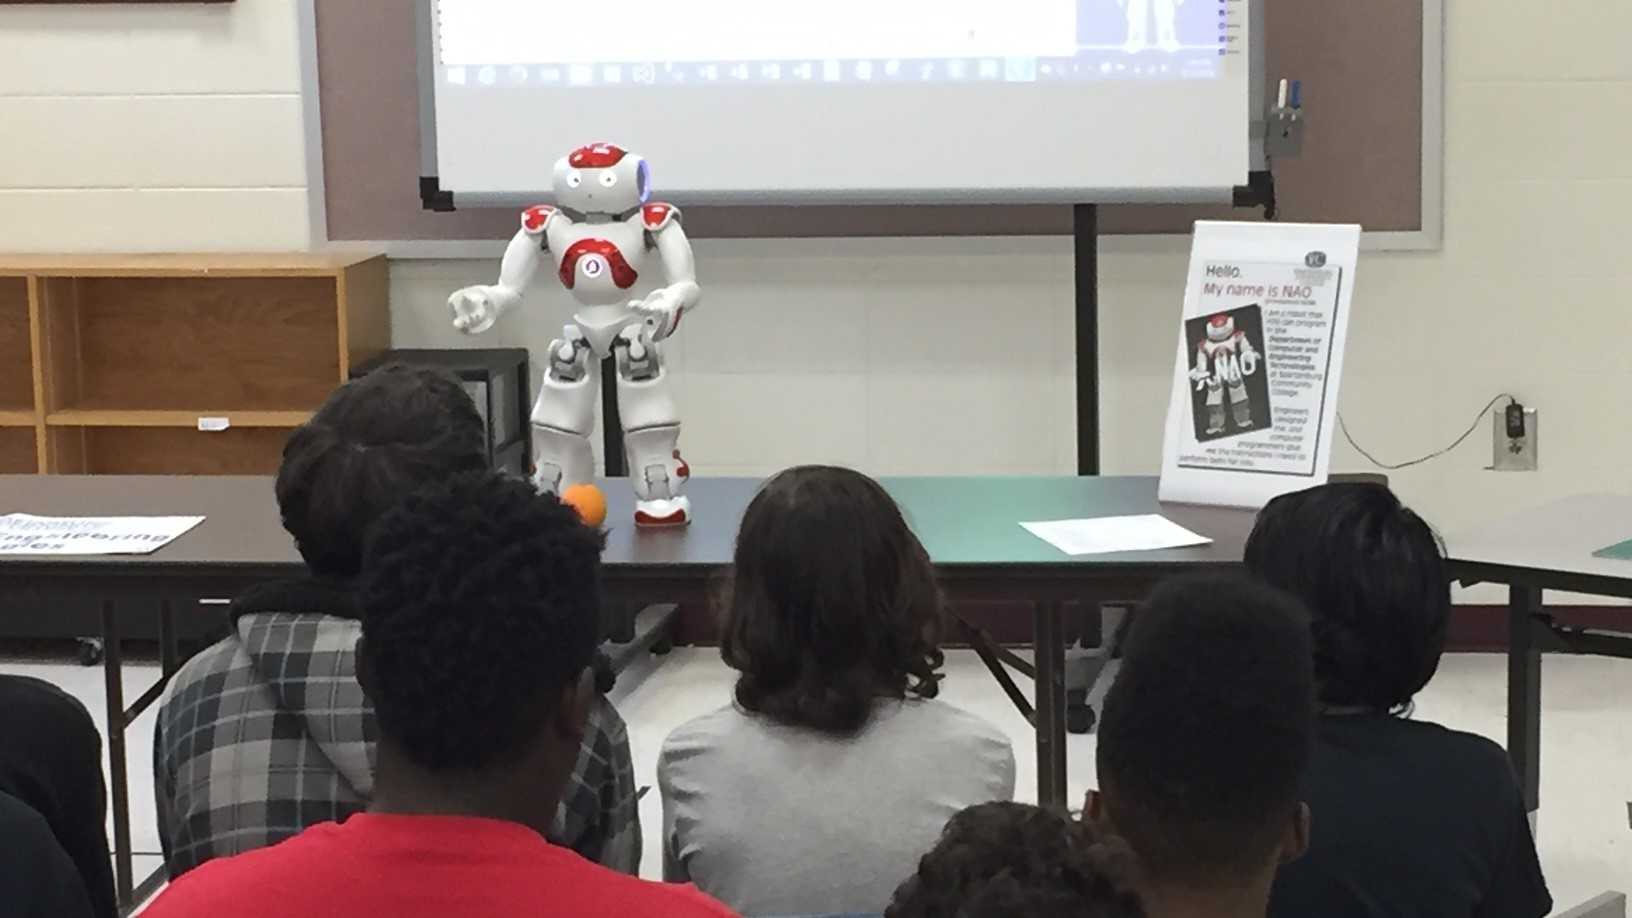 Humanoid robots visit Carver Middle School in Spartanburg.